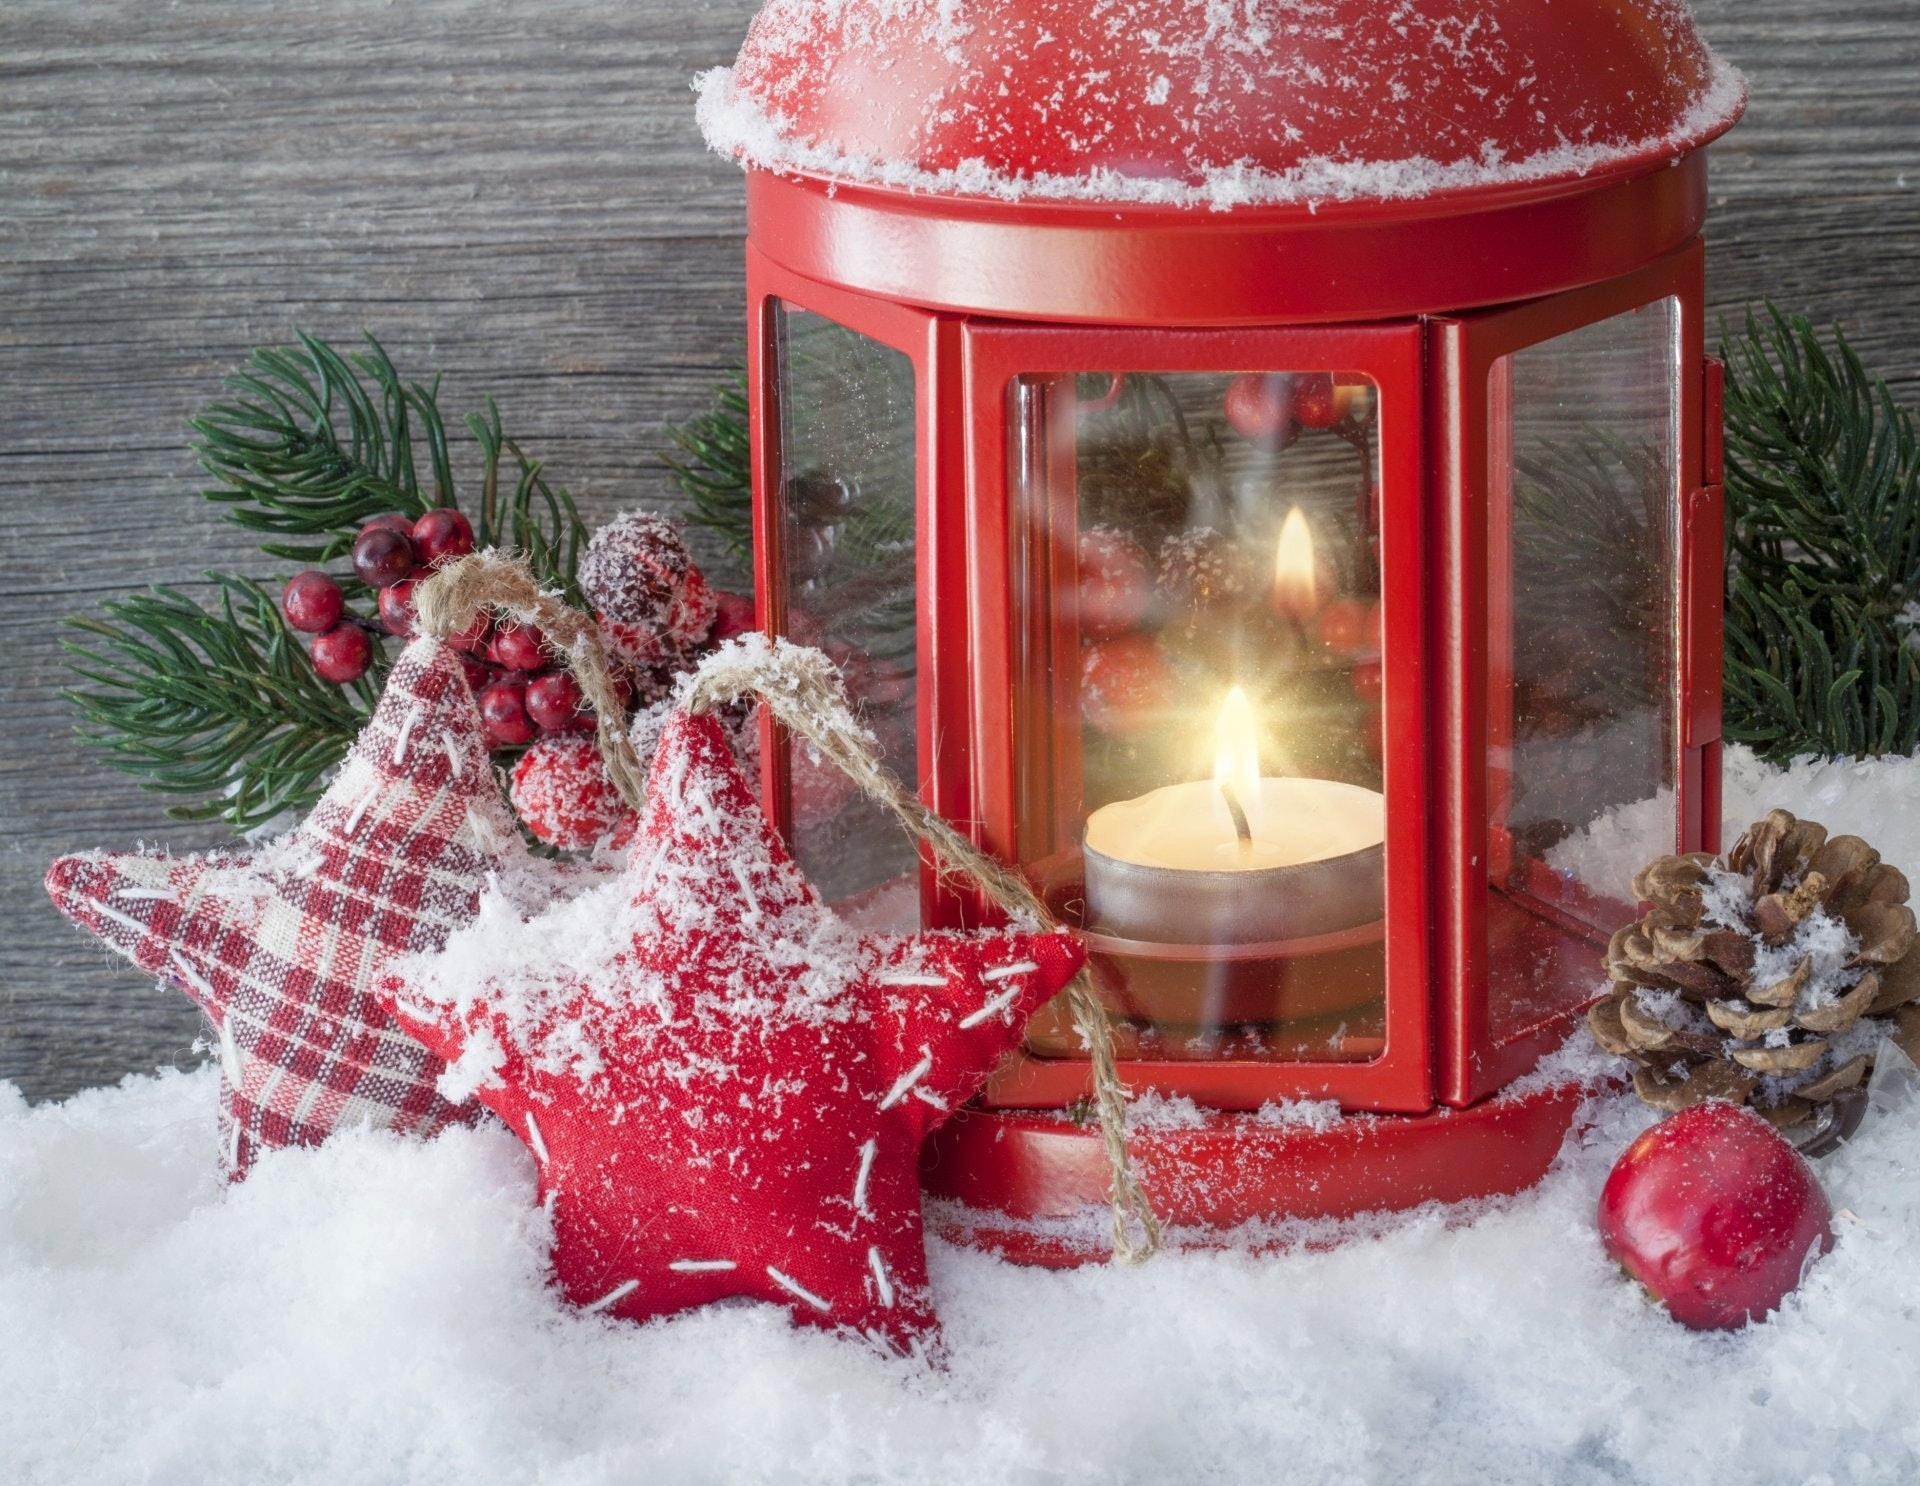 A lighted white tealight candle inside a red metal lantern